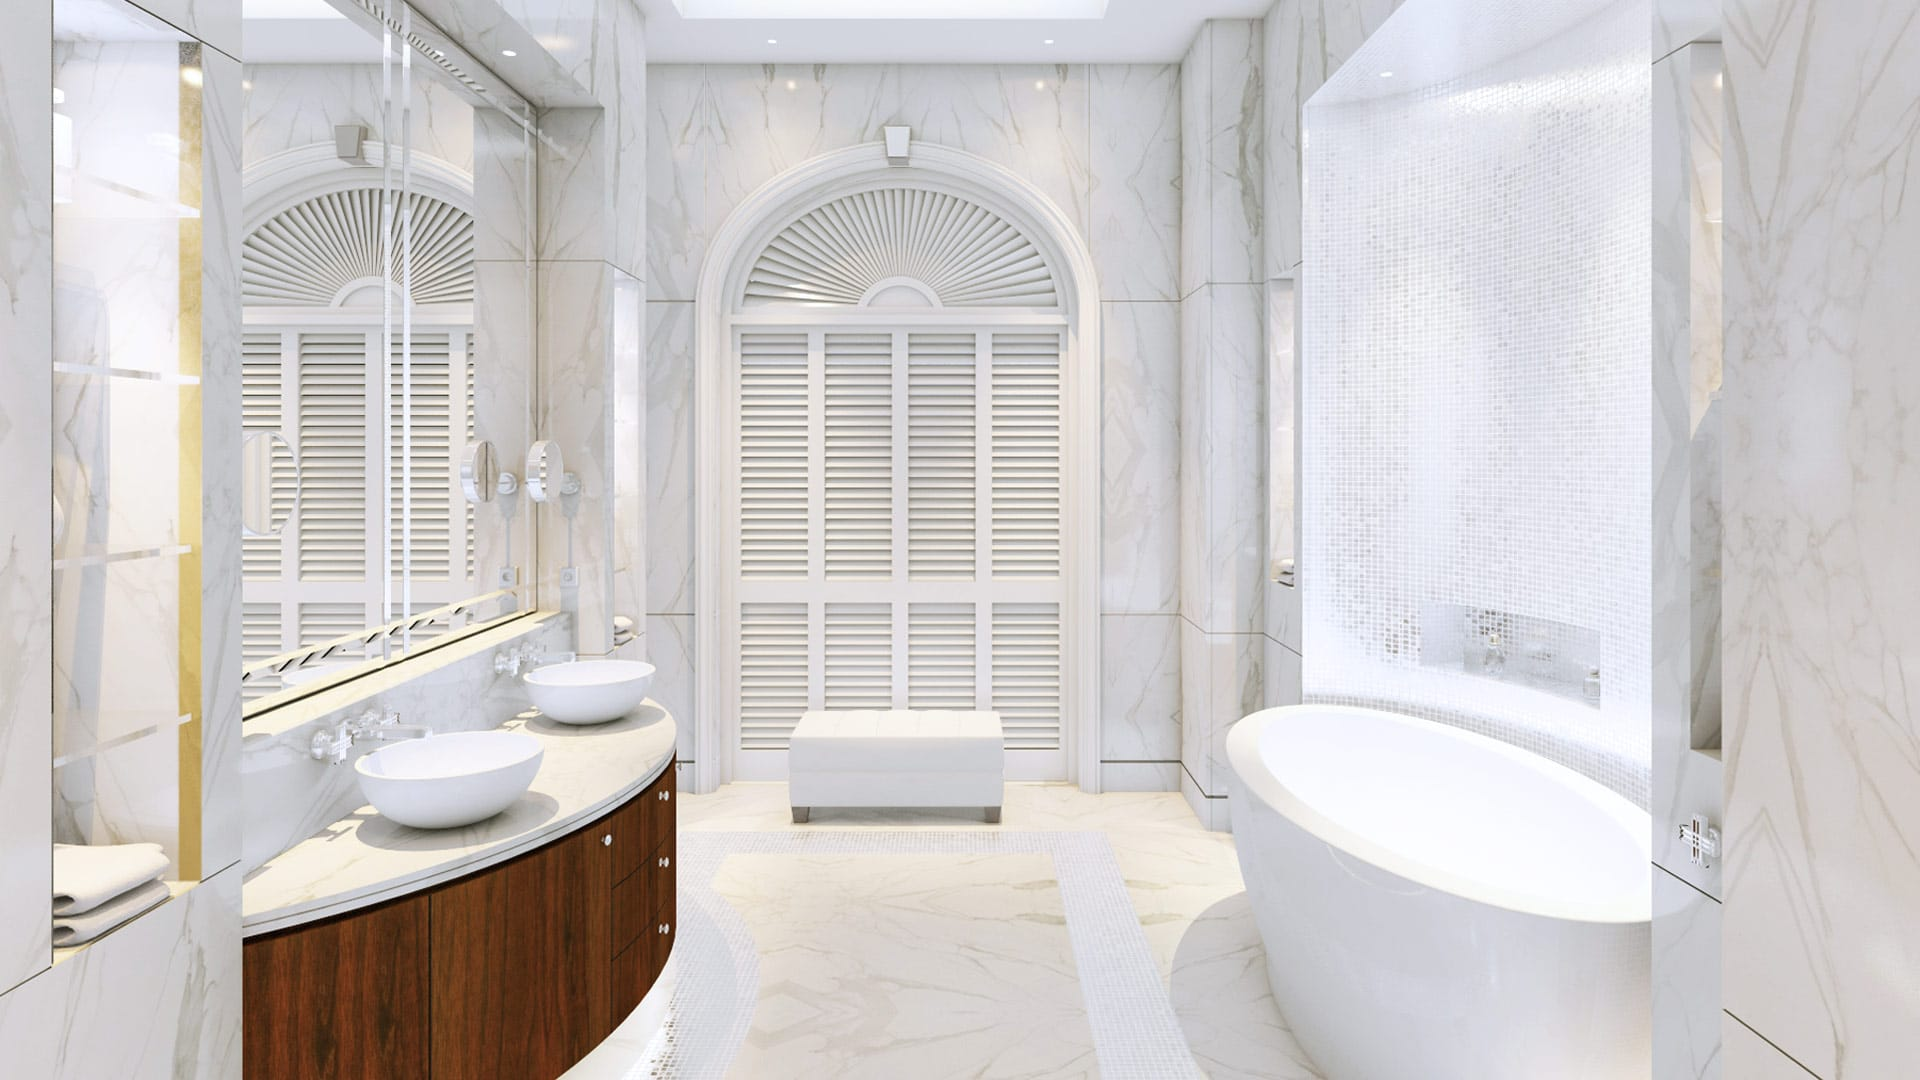 washroom and bathroom interior design